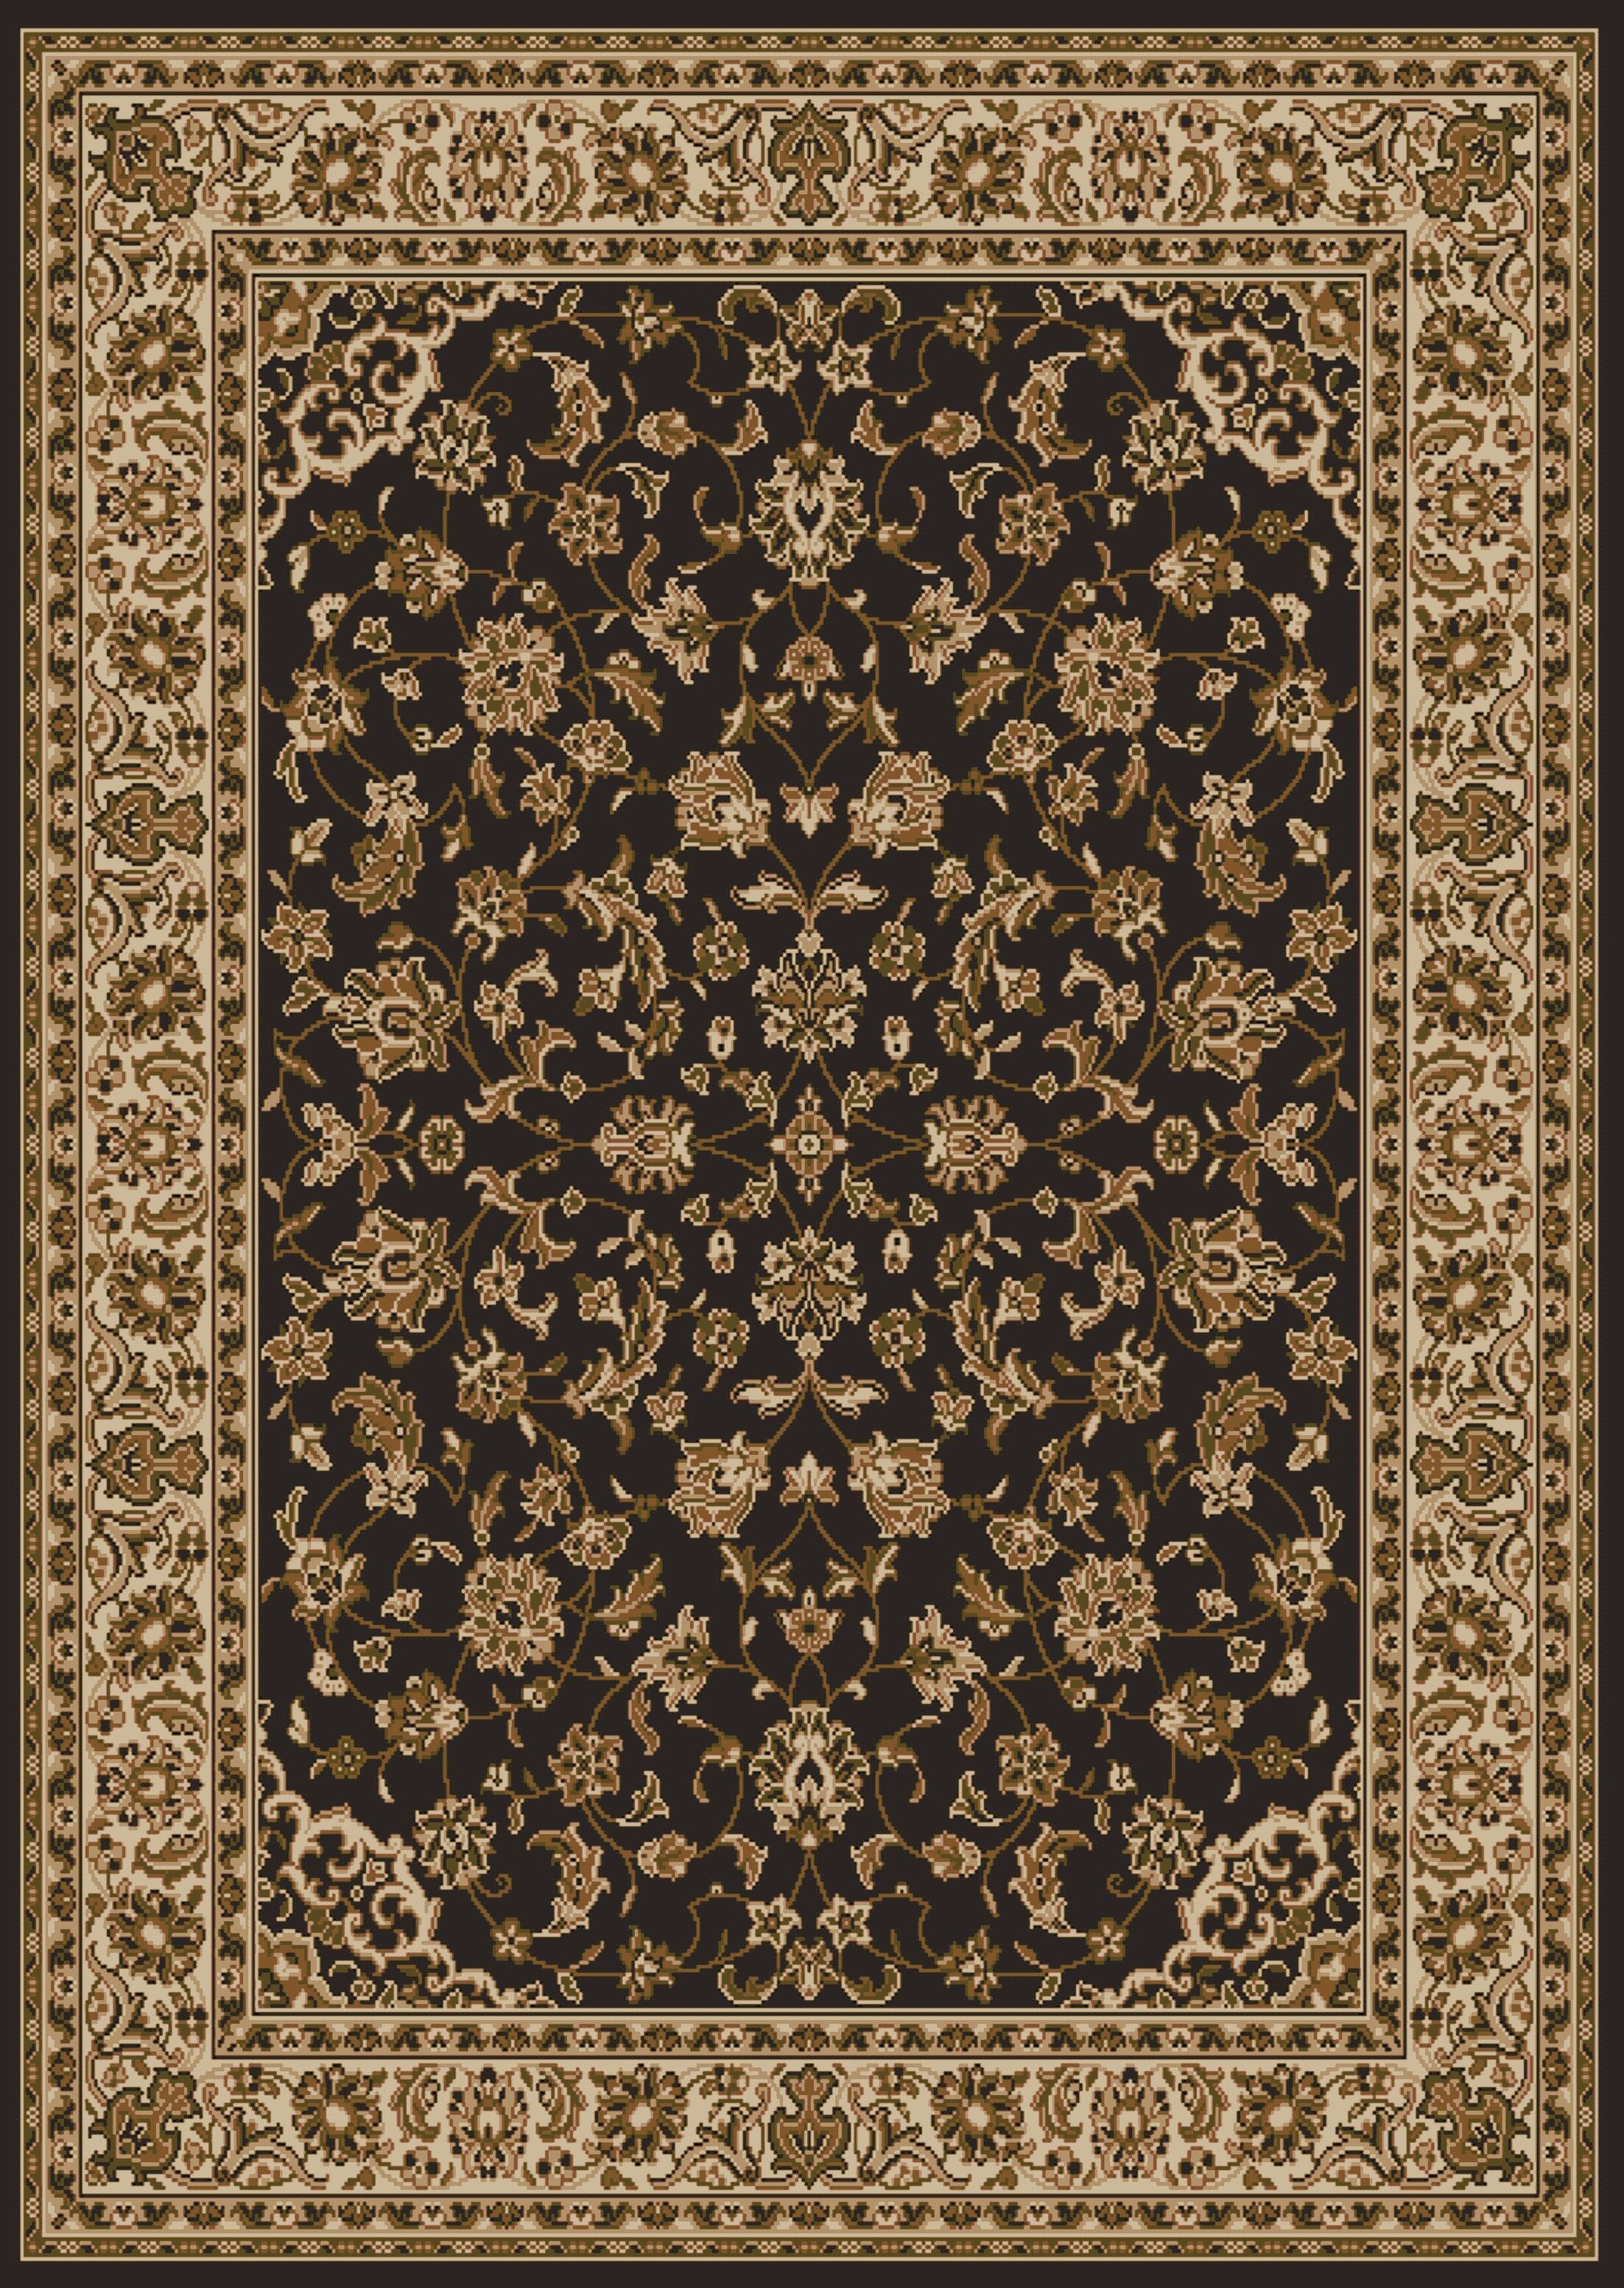 Weisgerber Brown Area Rug Rug Size: 5'5